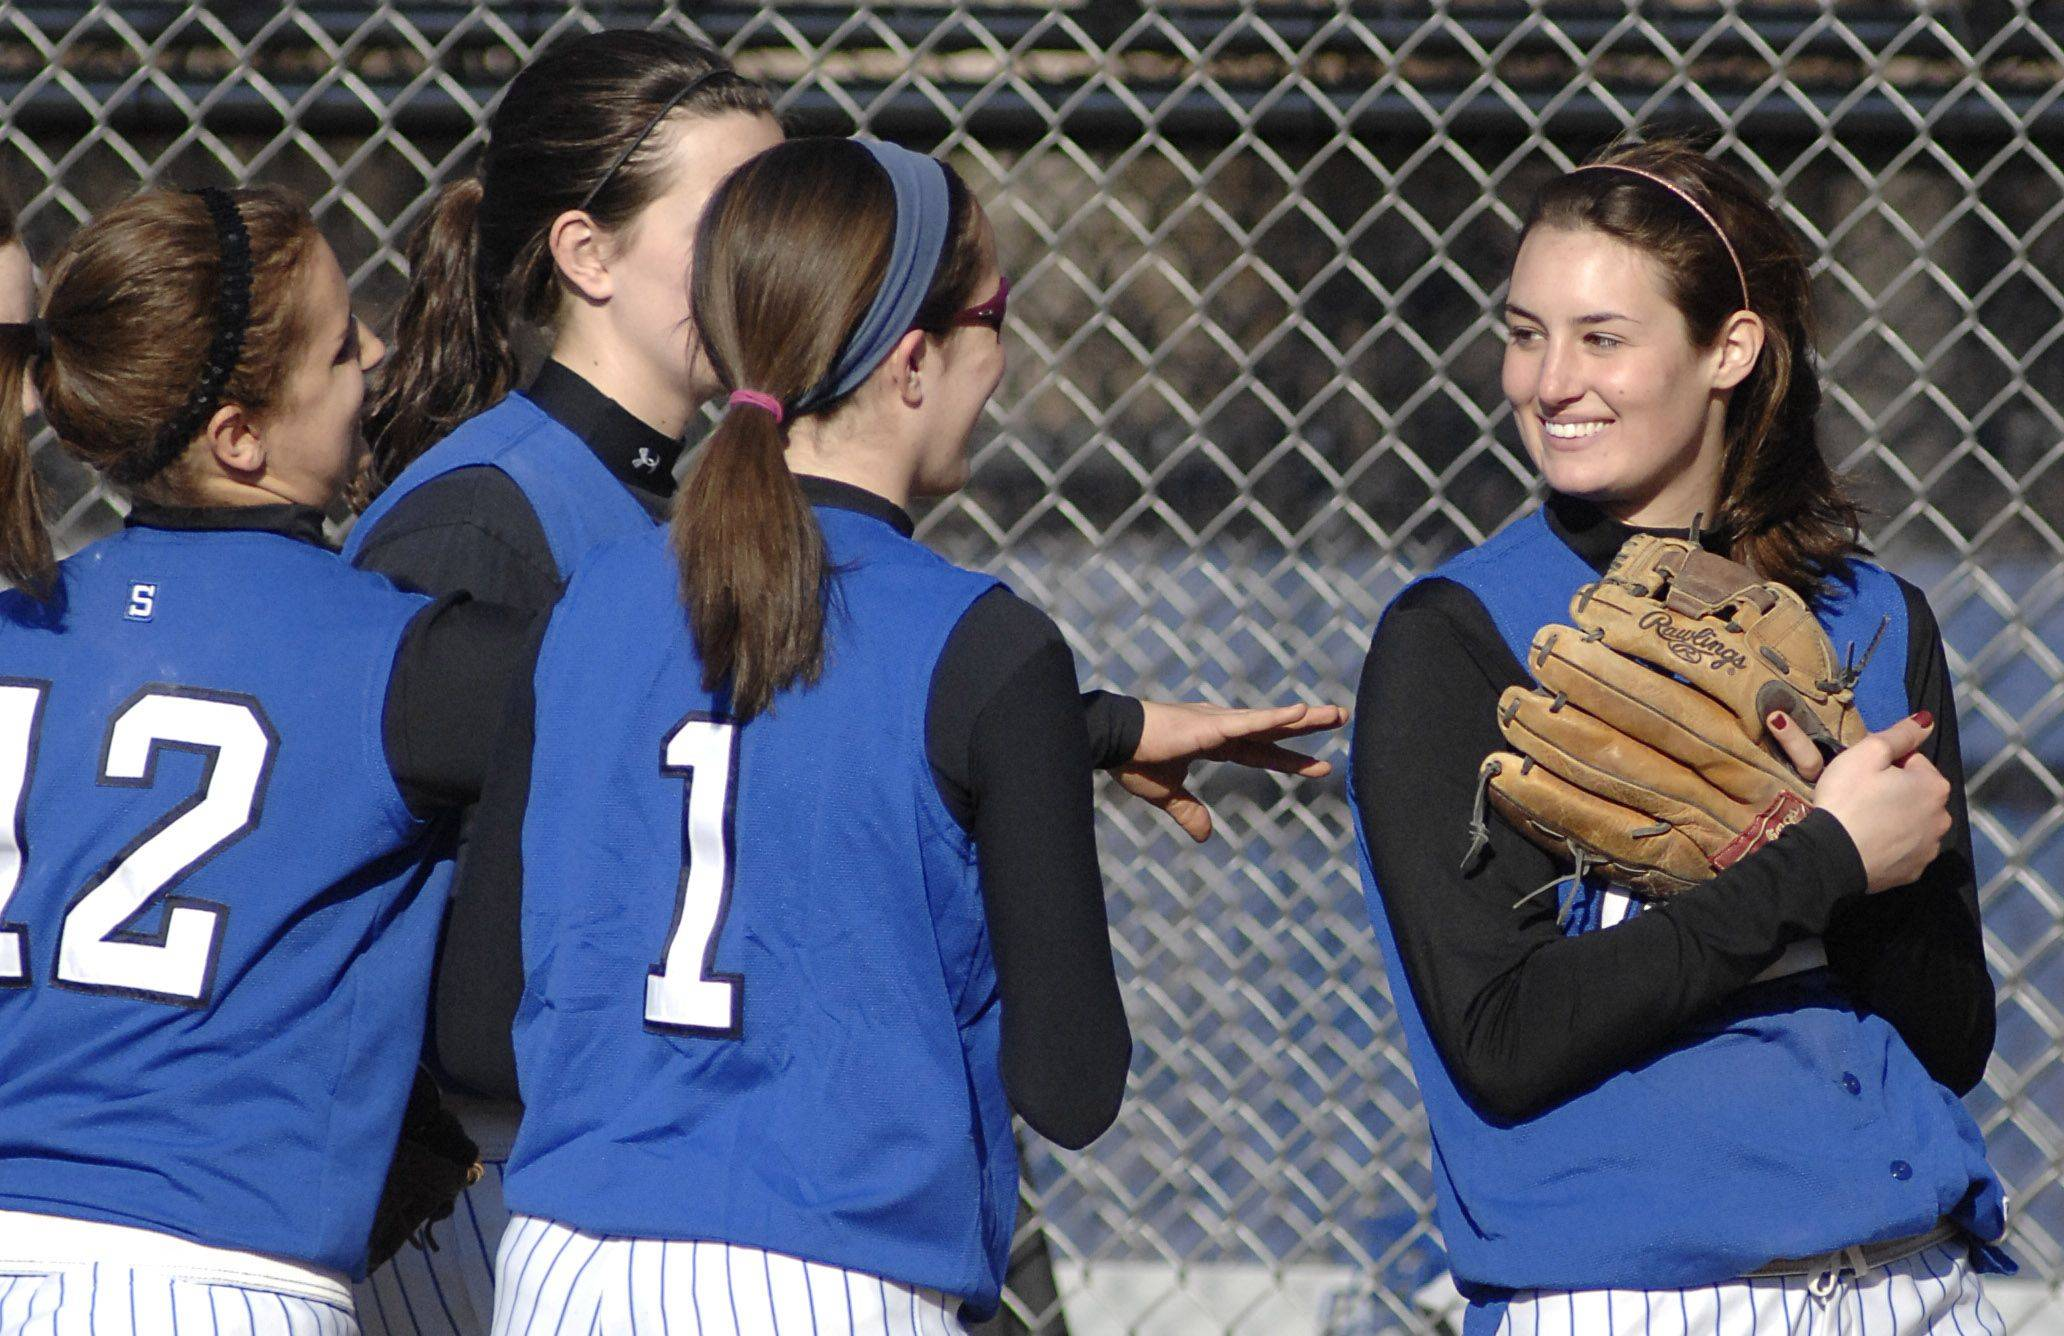 Geneva's Kelly McCaffrey smiles as teammates cheer her on for catching the final out of the seventh inning to seal their win over St. Francis on Wednesday, March 30.